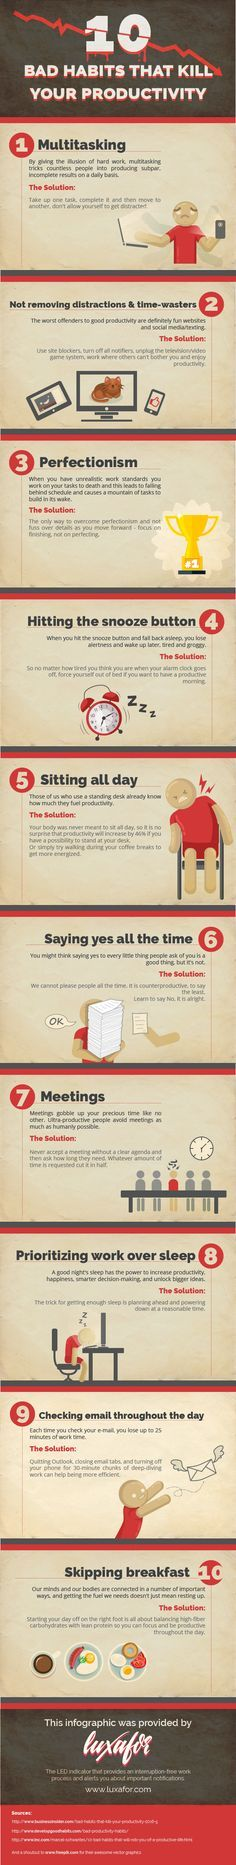 The worst habits that kill productivity and negatively impact your ability to get things done.